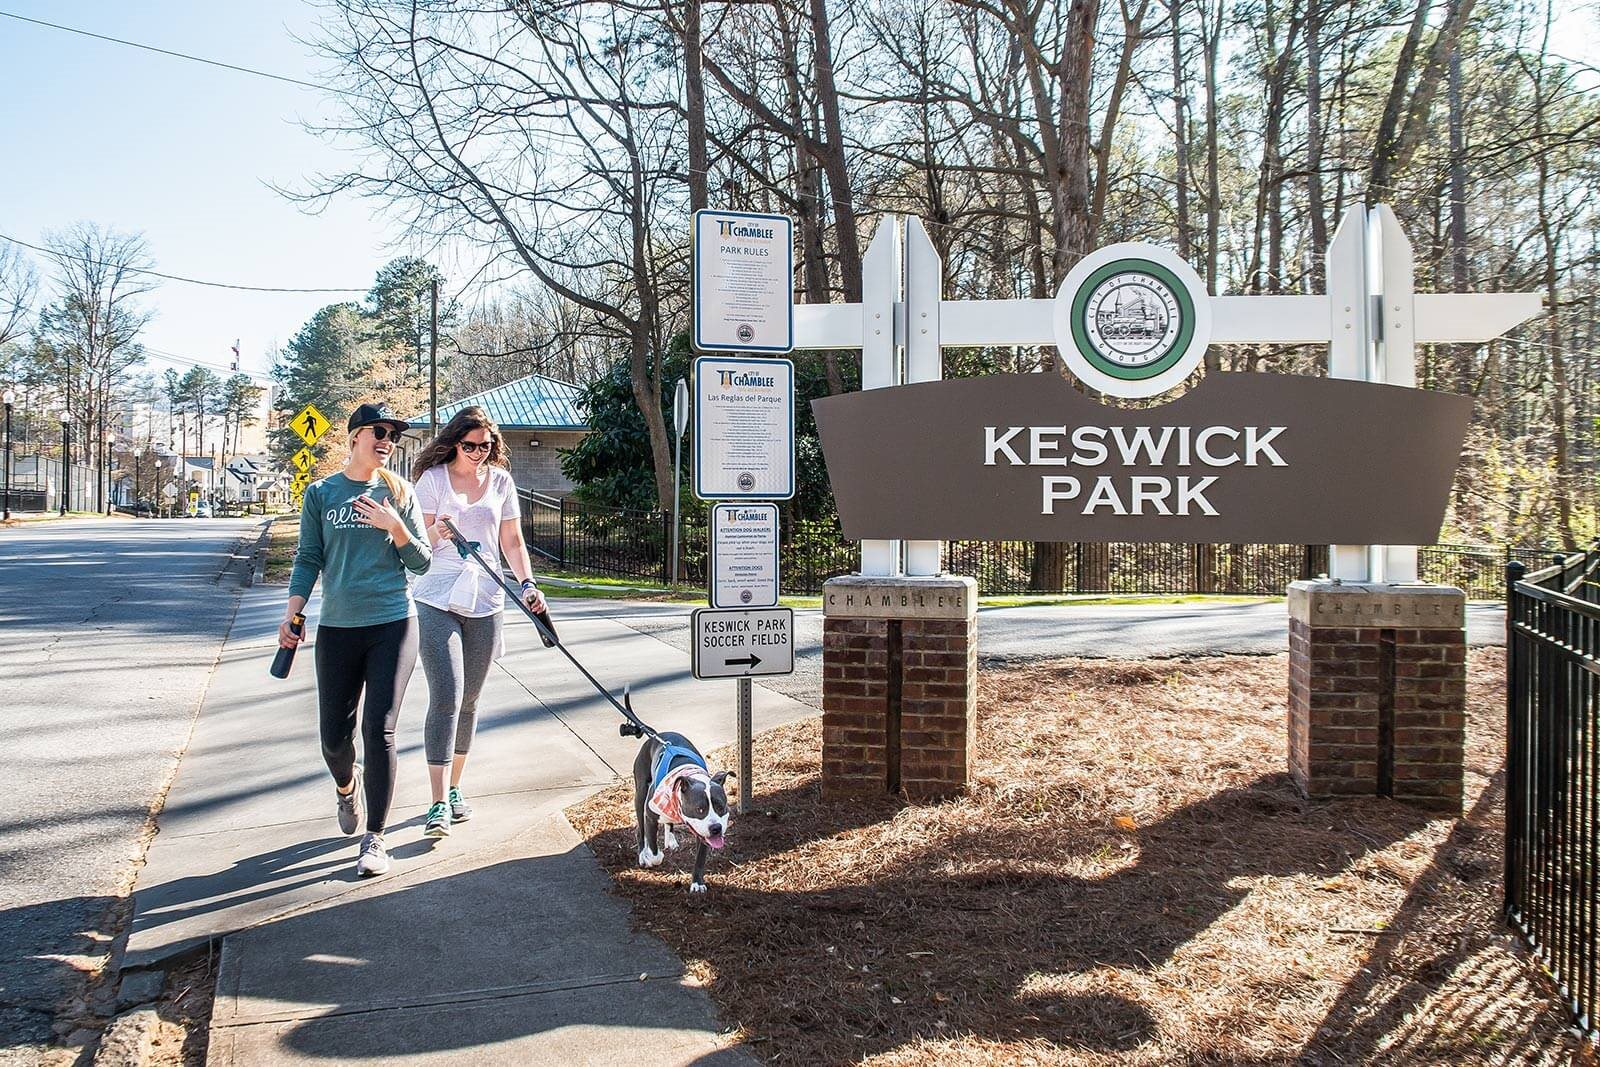 Walking Distance To Keswick Park from Windsor Parkview, 5070 Peachtree Boulevard, GA